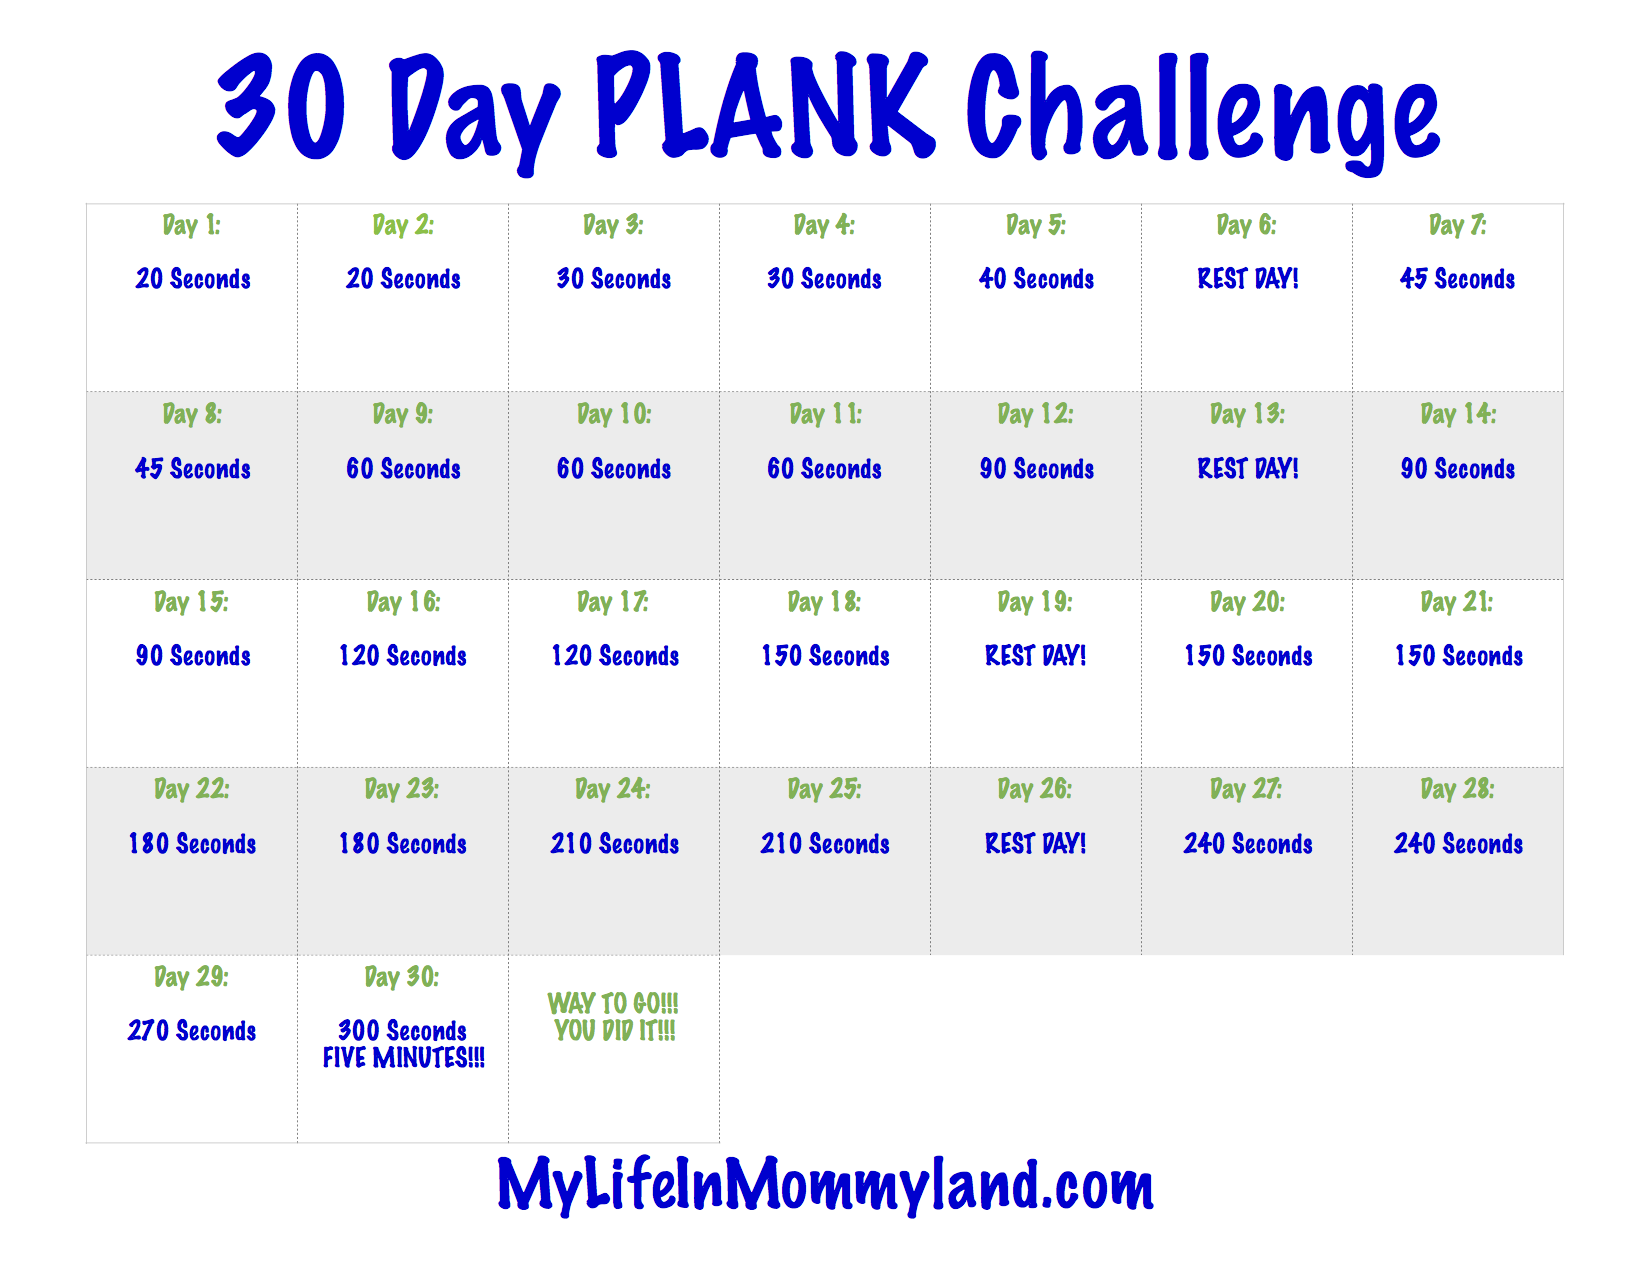 image regarding Printable Plank Challenge named 30 Working day Mommyland Plank Concern My Daily life inside Mommyland